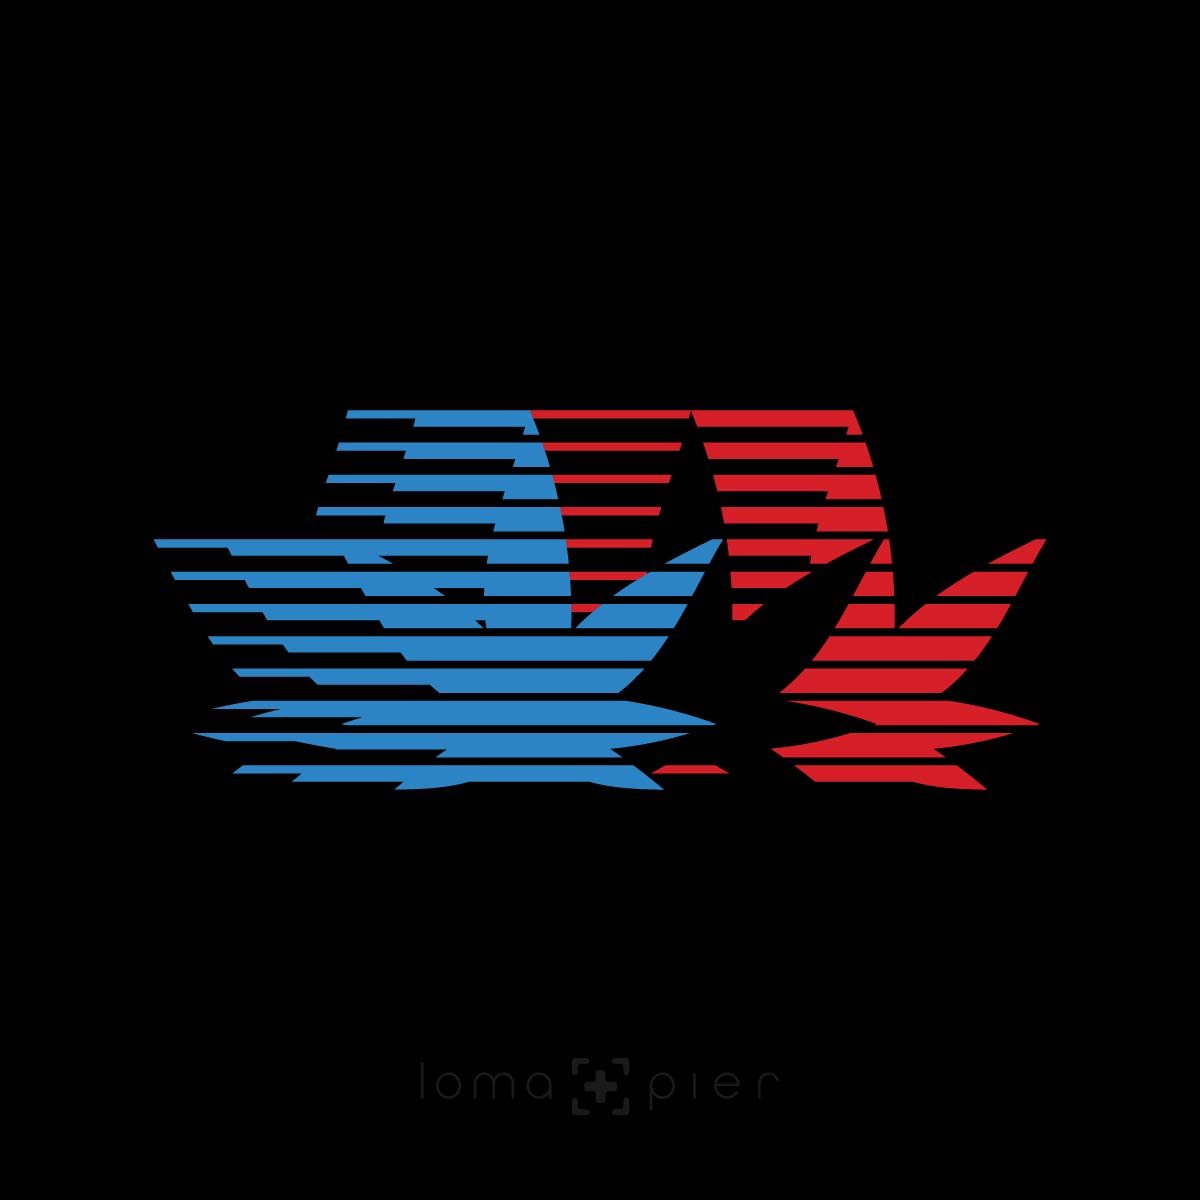 WEED retro OLYMPICS design by loma+pier hat shop